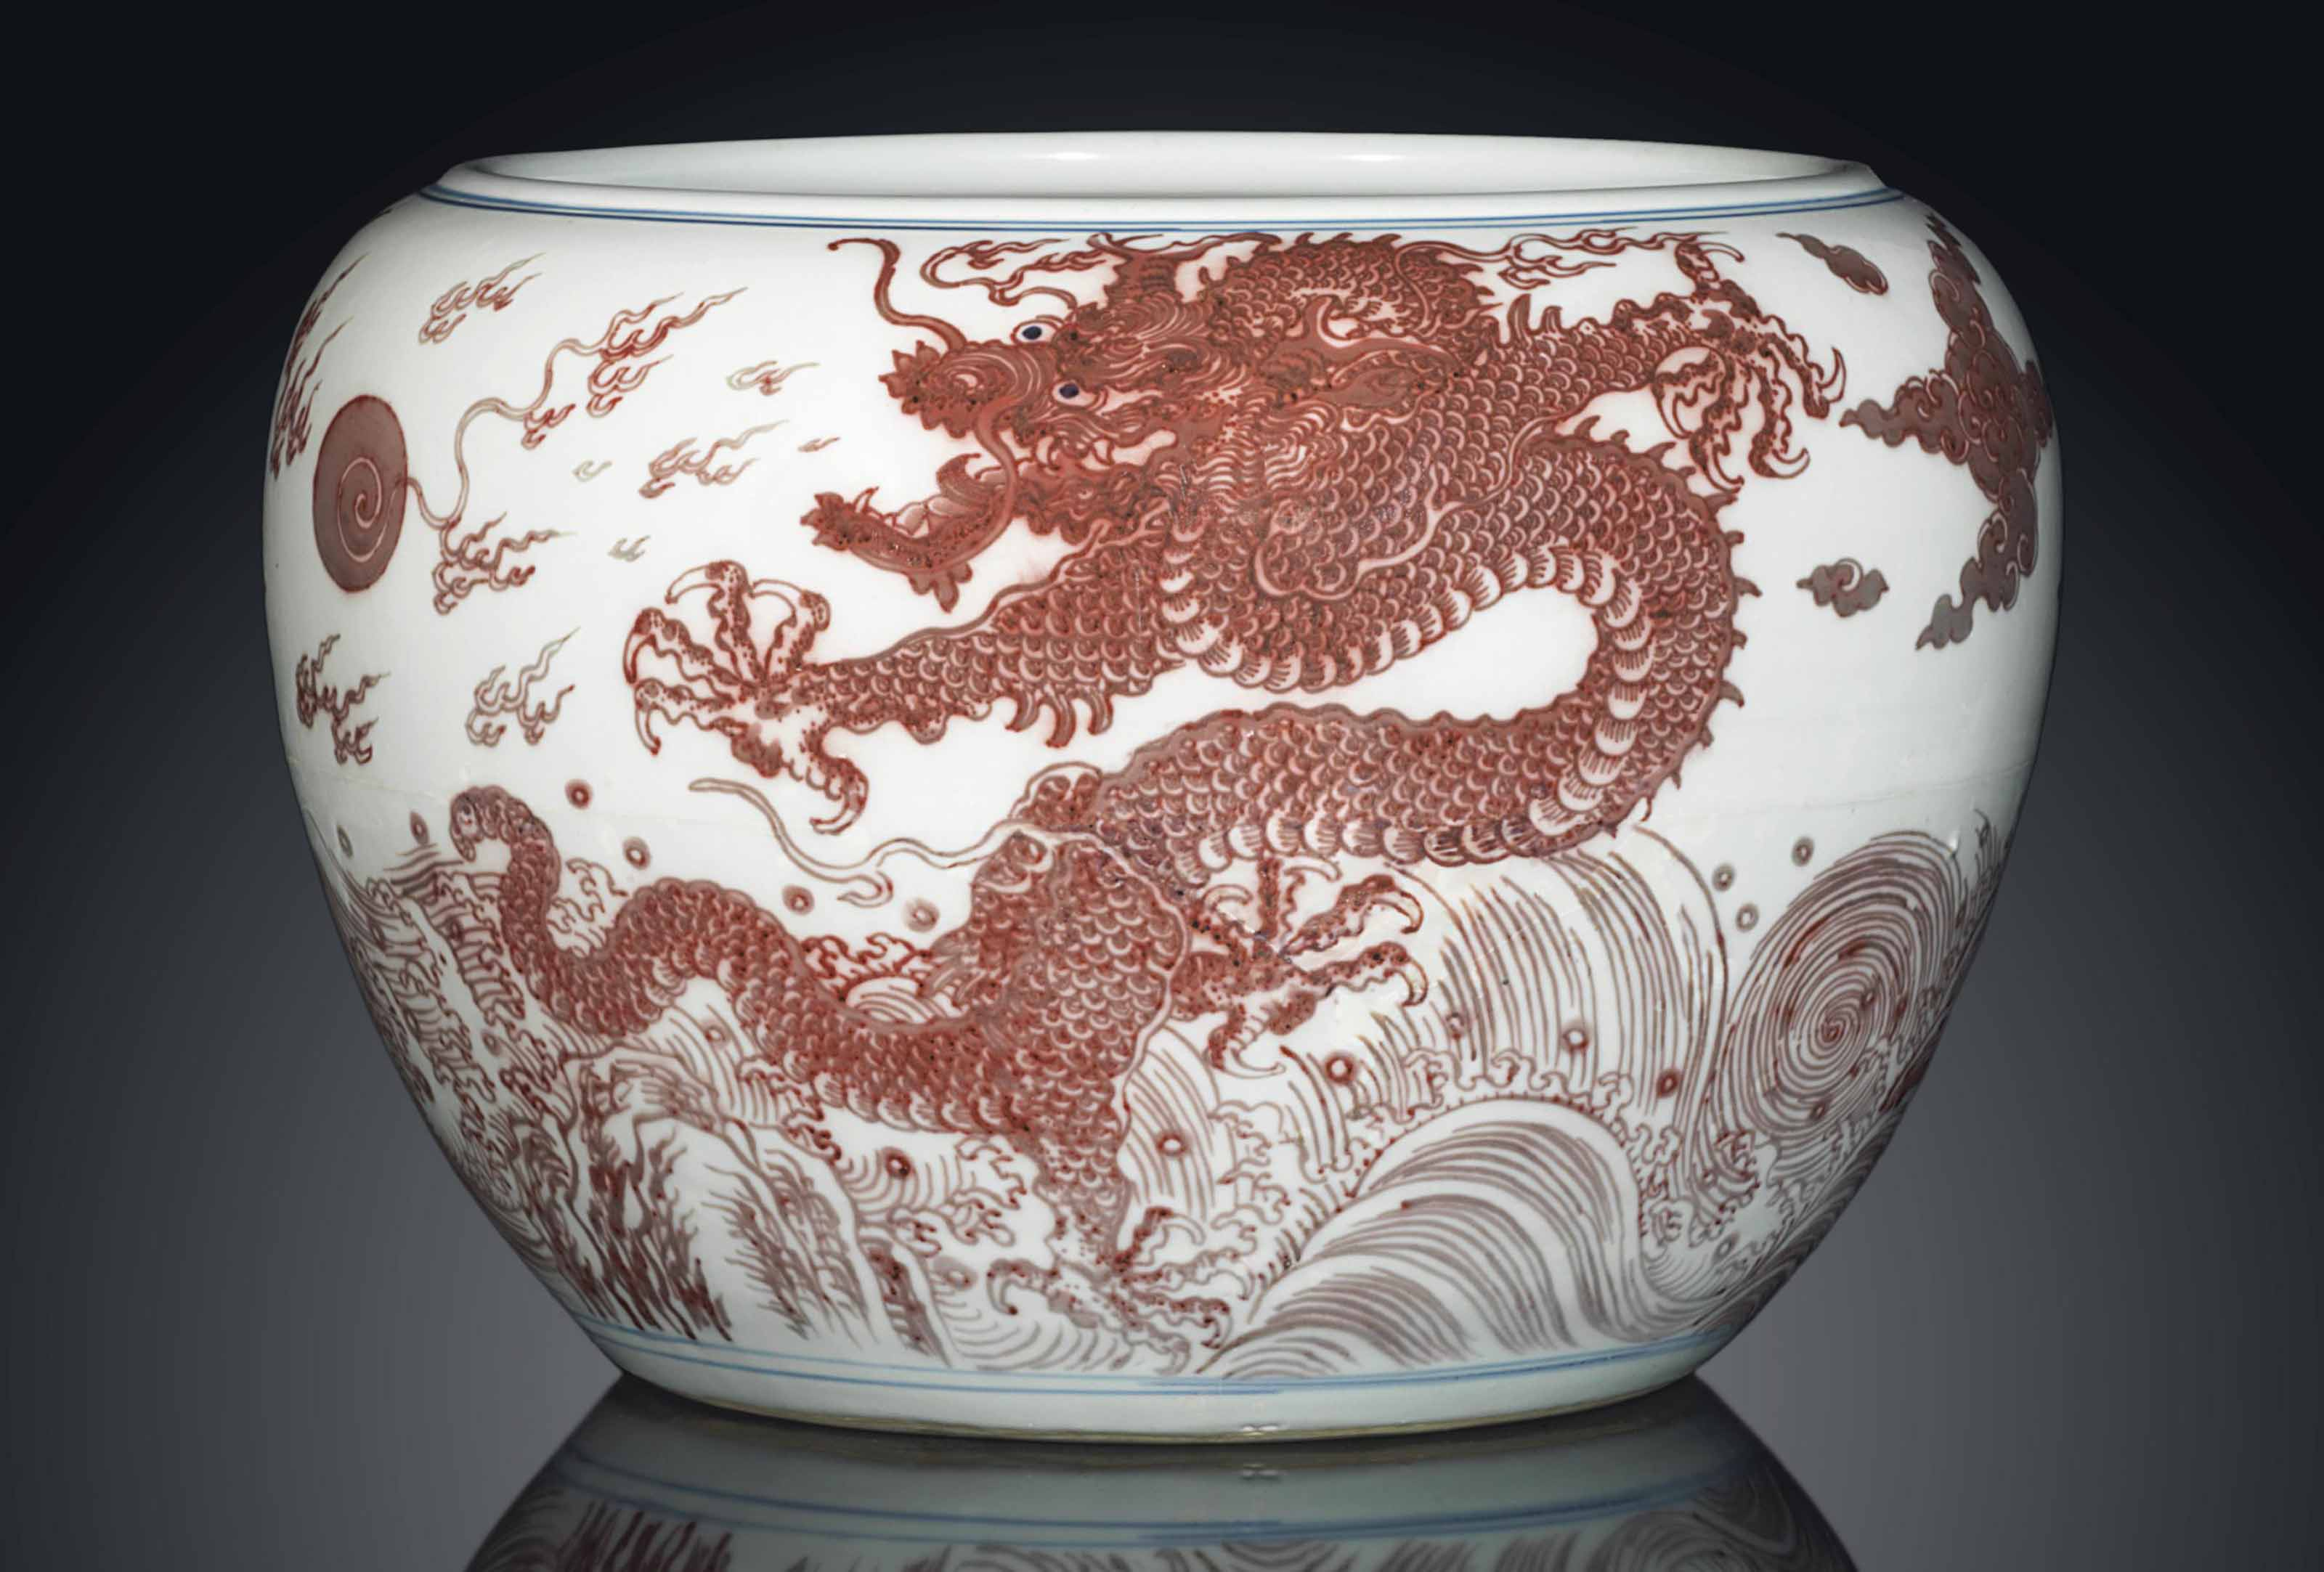 A RARE COPPER-RED AND UNDERGLAZE-BLUE DECORATED 'DRAGON' FISH BOWL